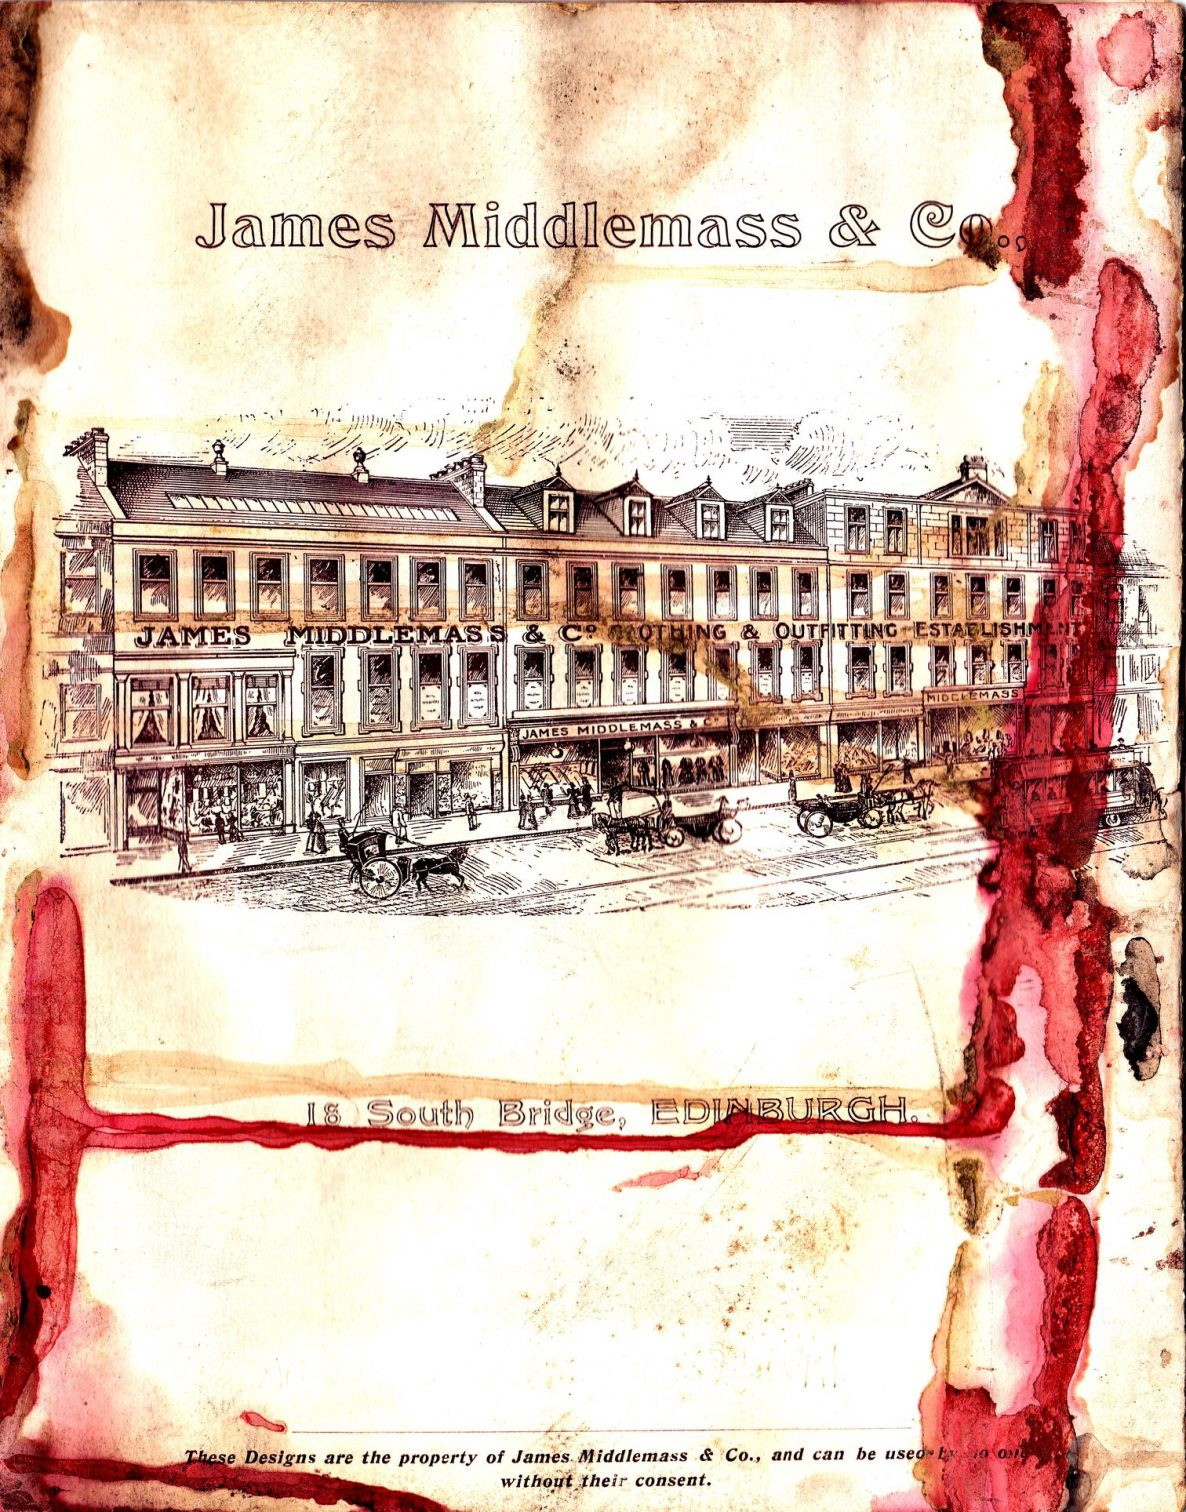 Glorious illustration of James Middlemass & Co's buildings at 18 South Bridge